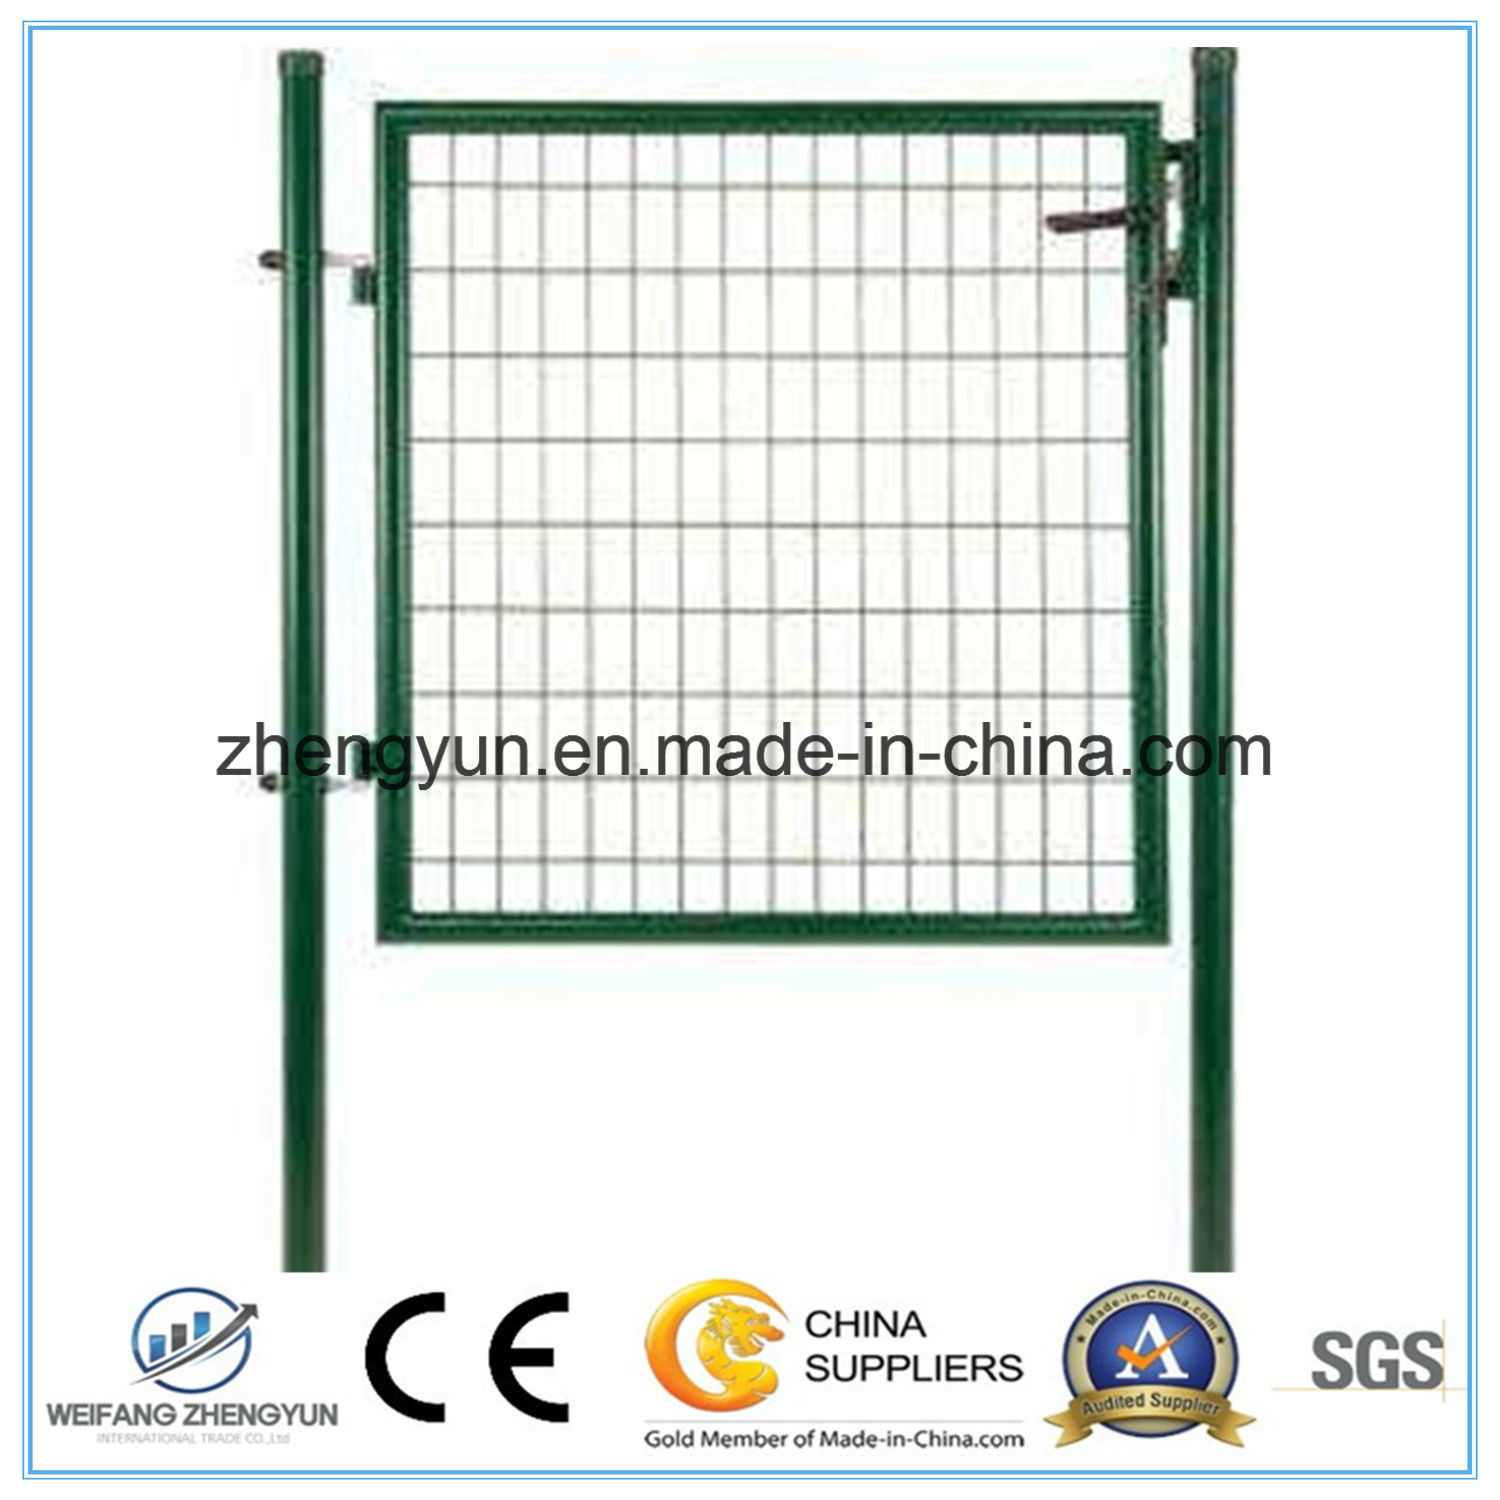 Made in China of Cheap Garden Gates Fence Door